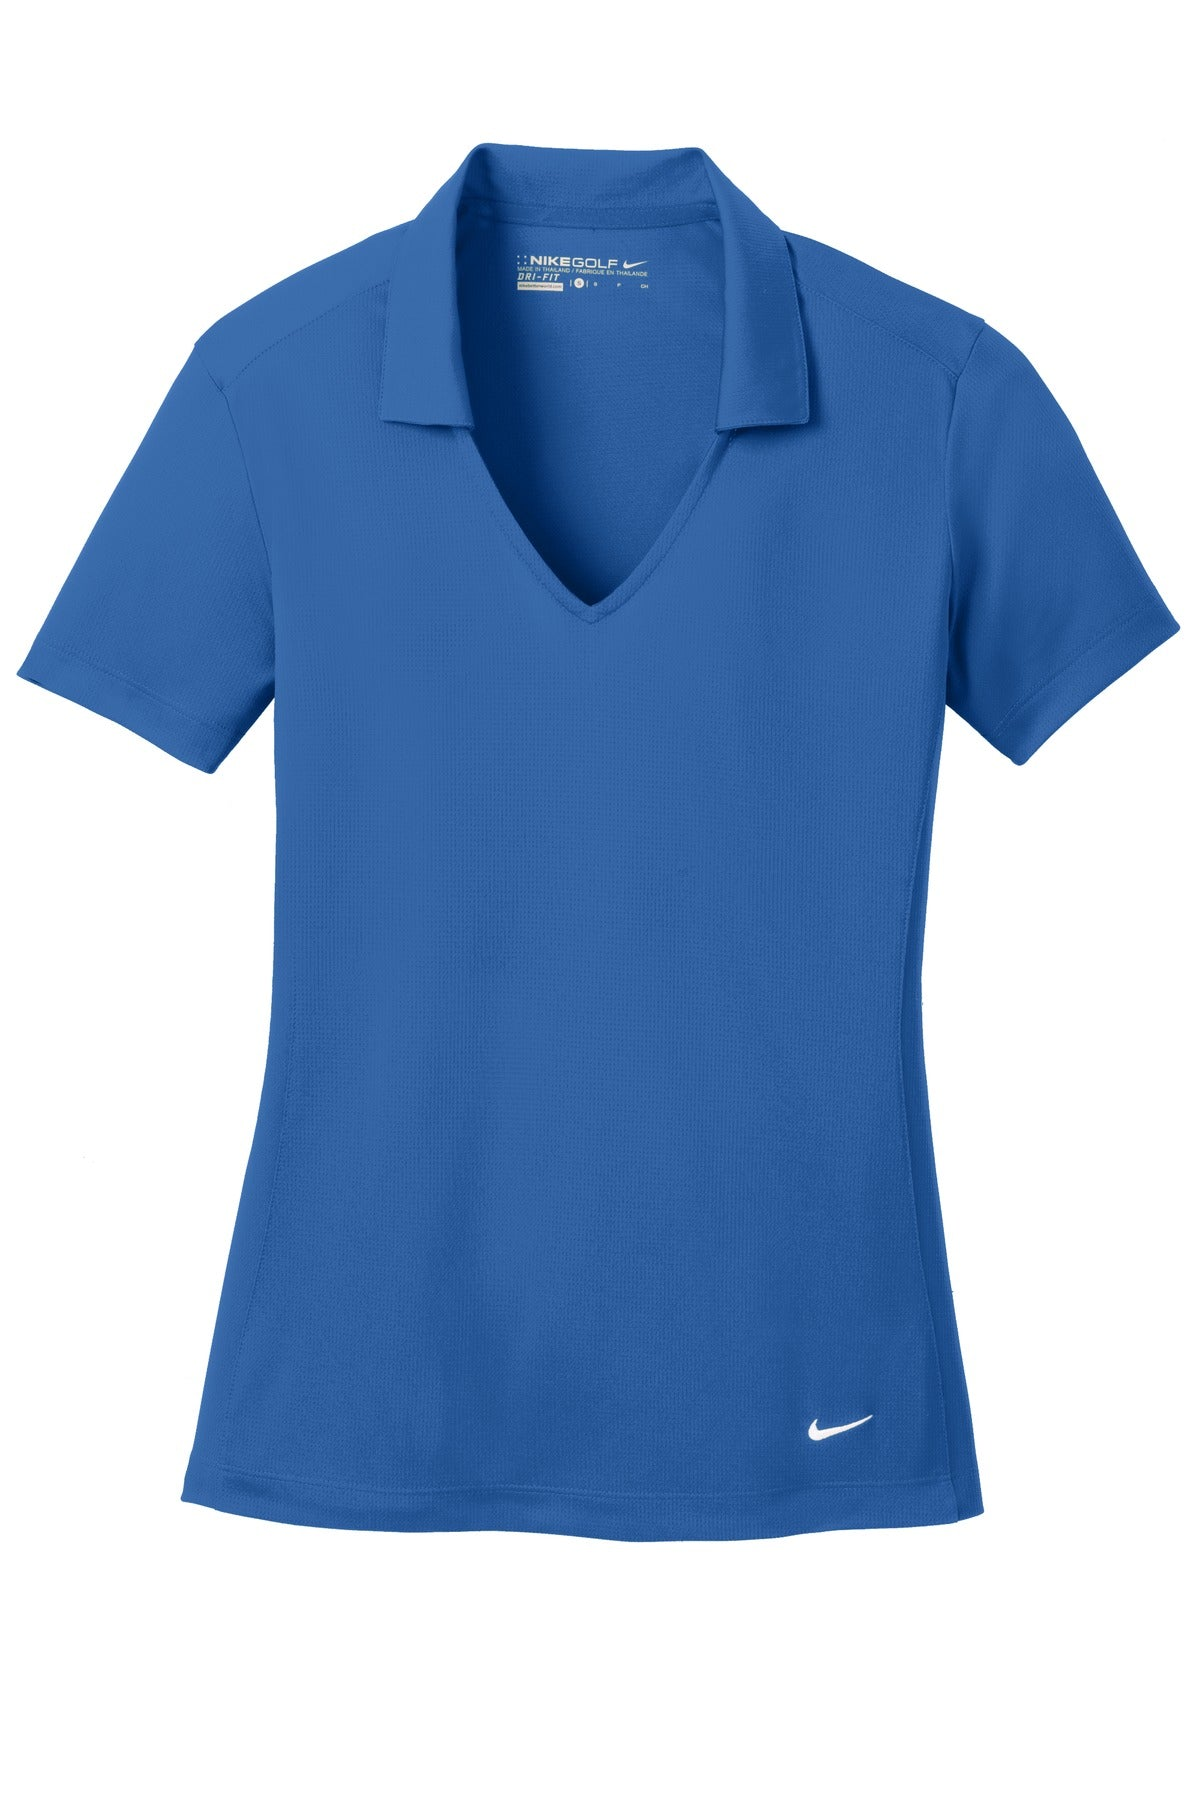 Gym Blue Nike Ladies Dri-FIT Vertical Mesh Polo.